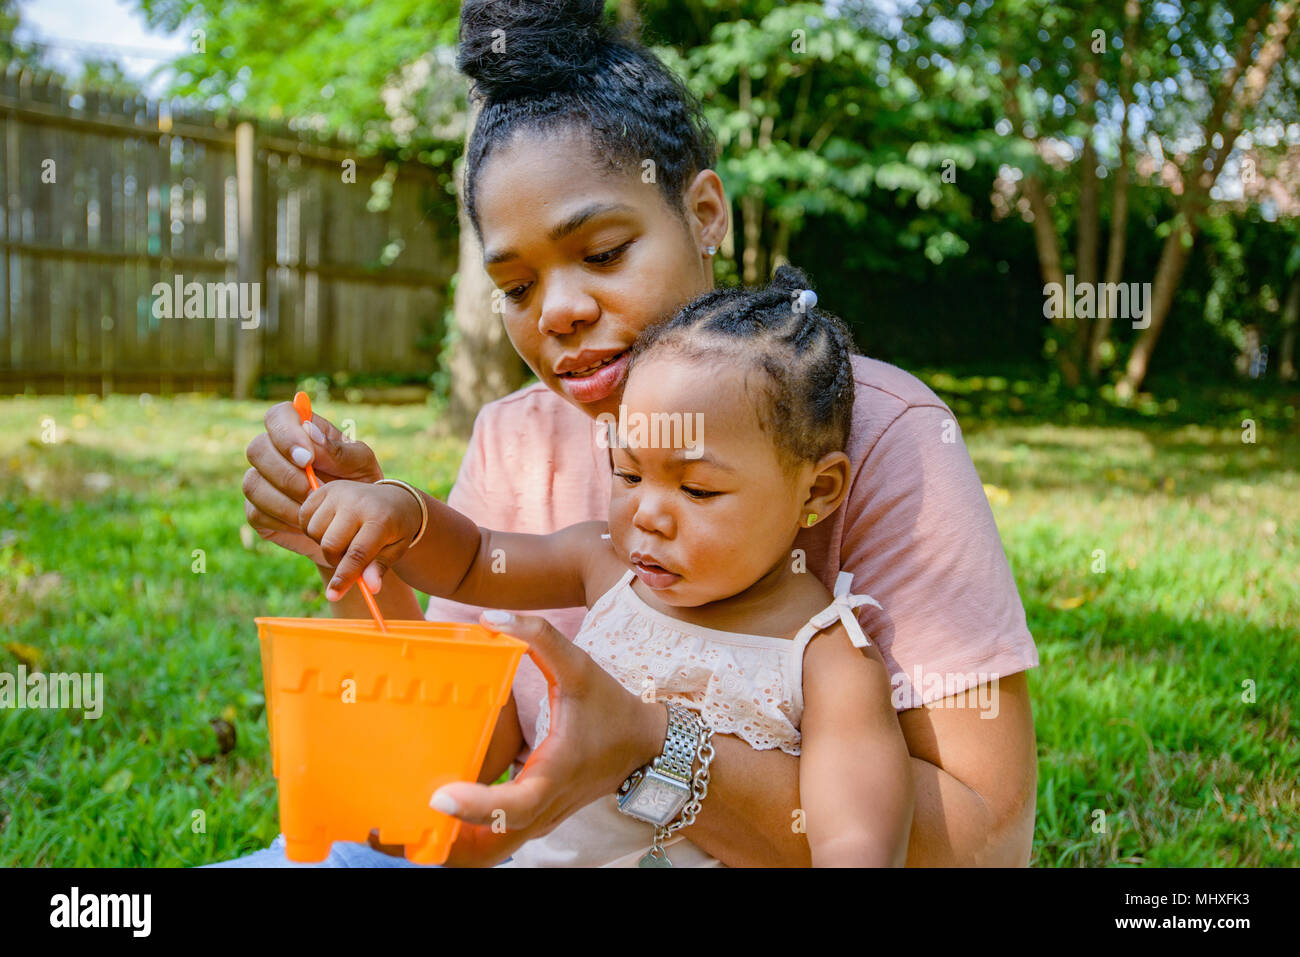 Mid adult woman Playing with toy bucket dans jardin avec bébé fille Photo Stock